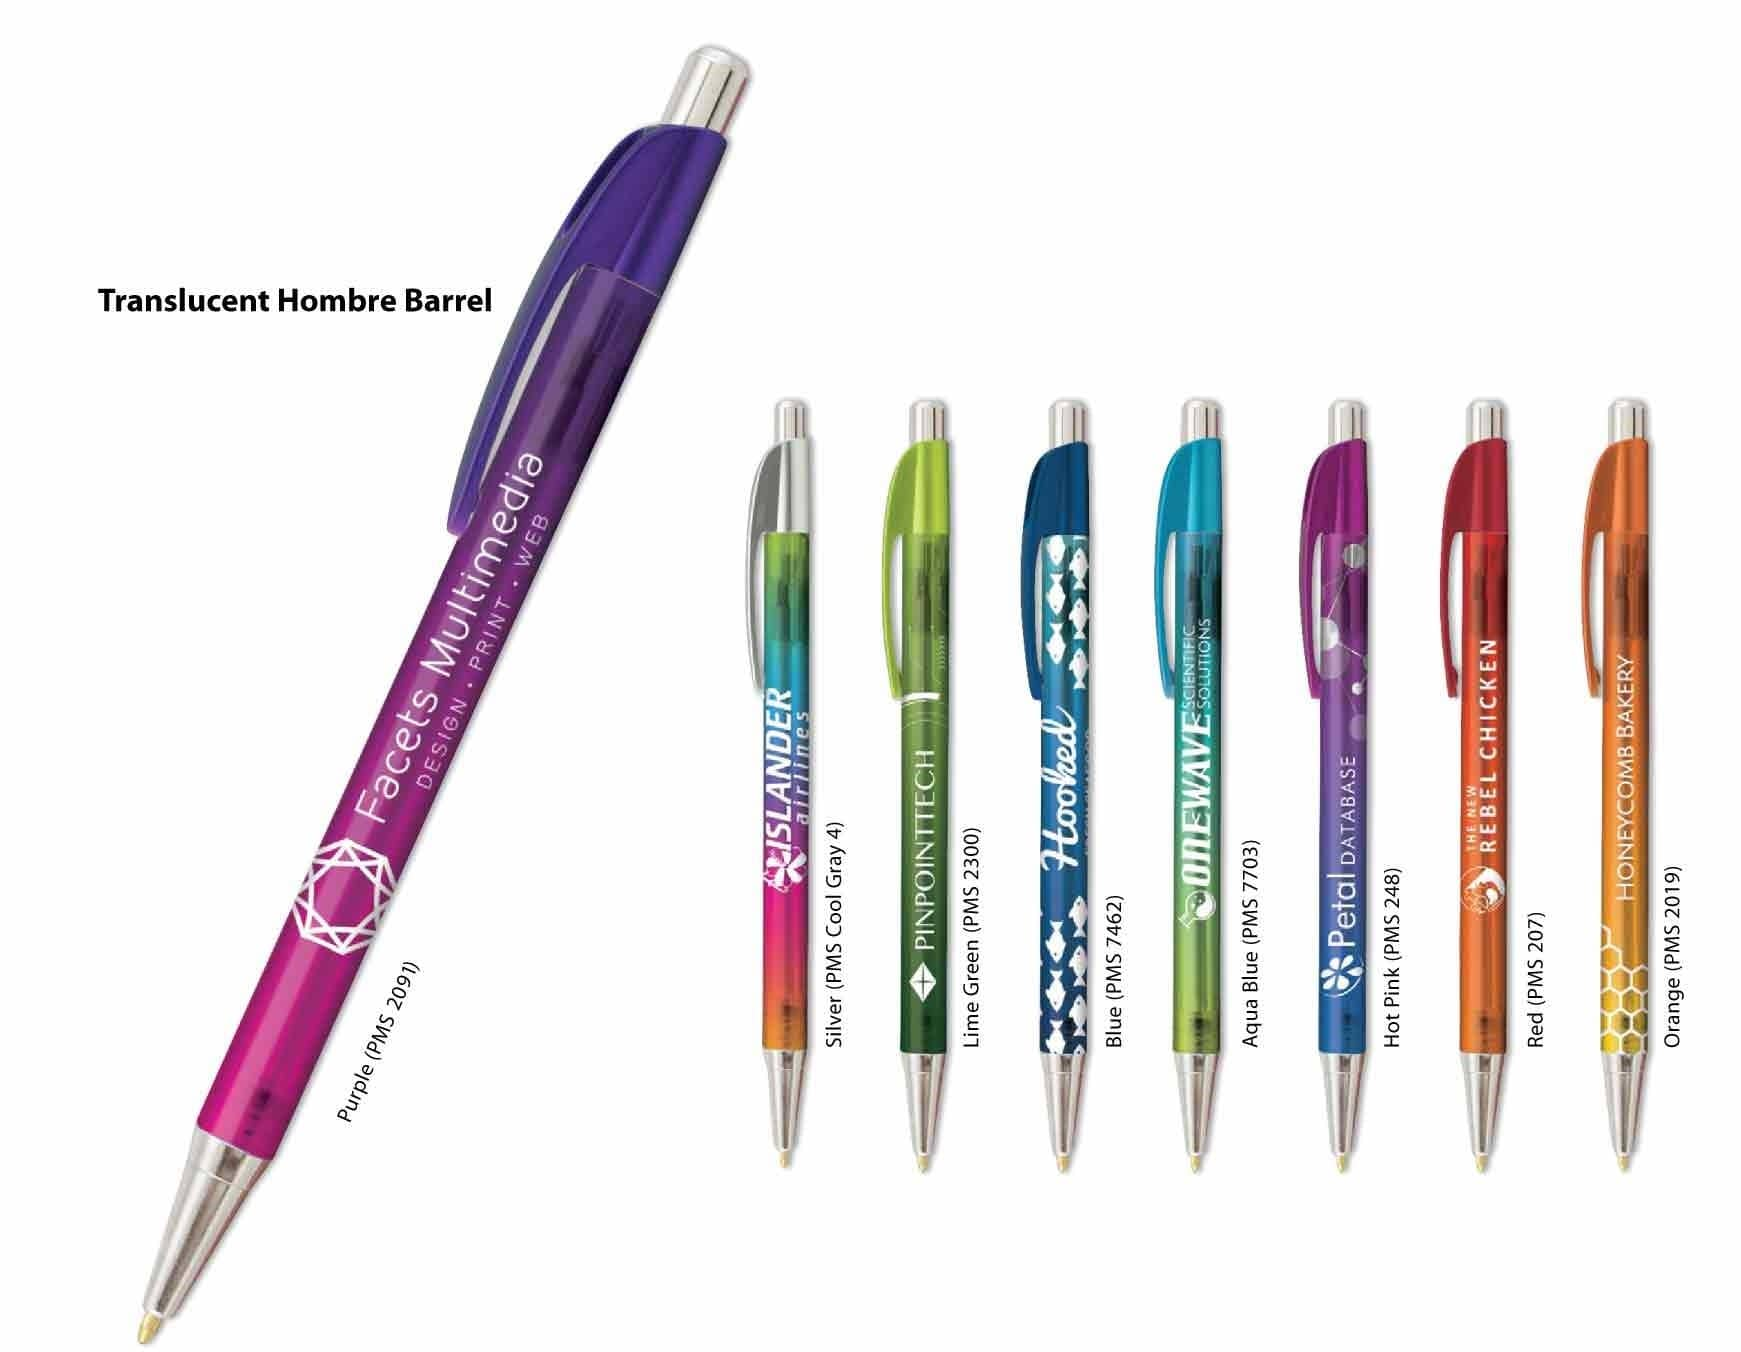 Promotional Giveaway Pens